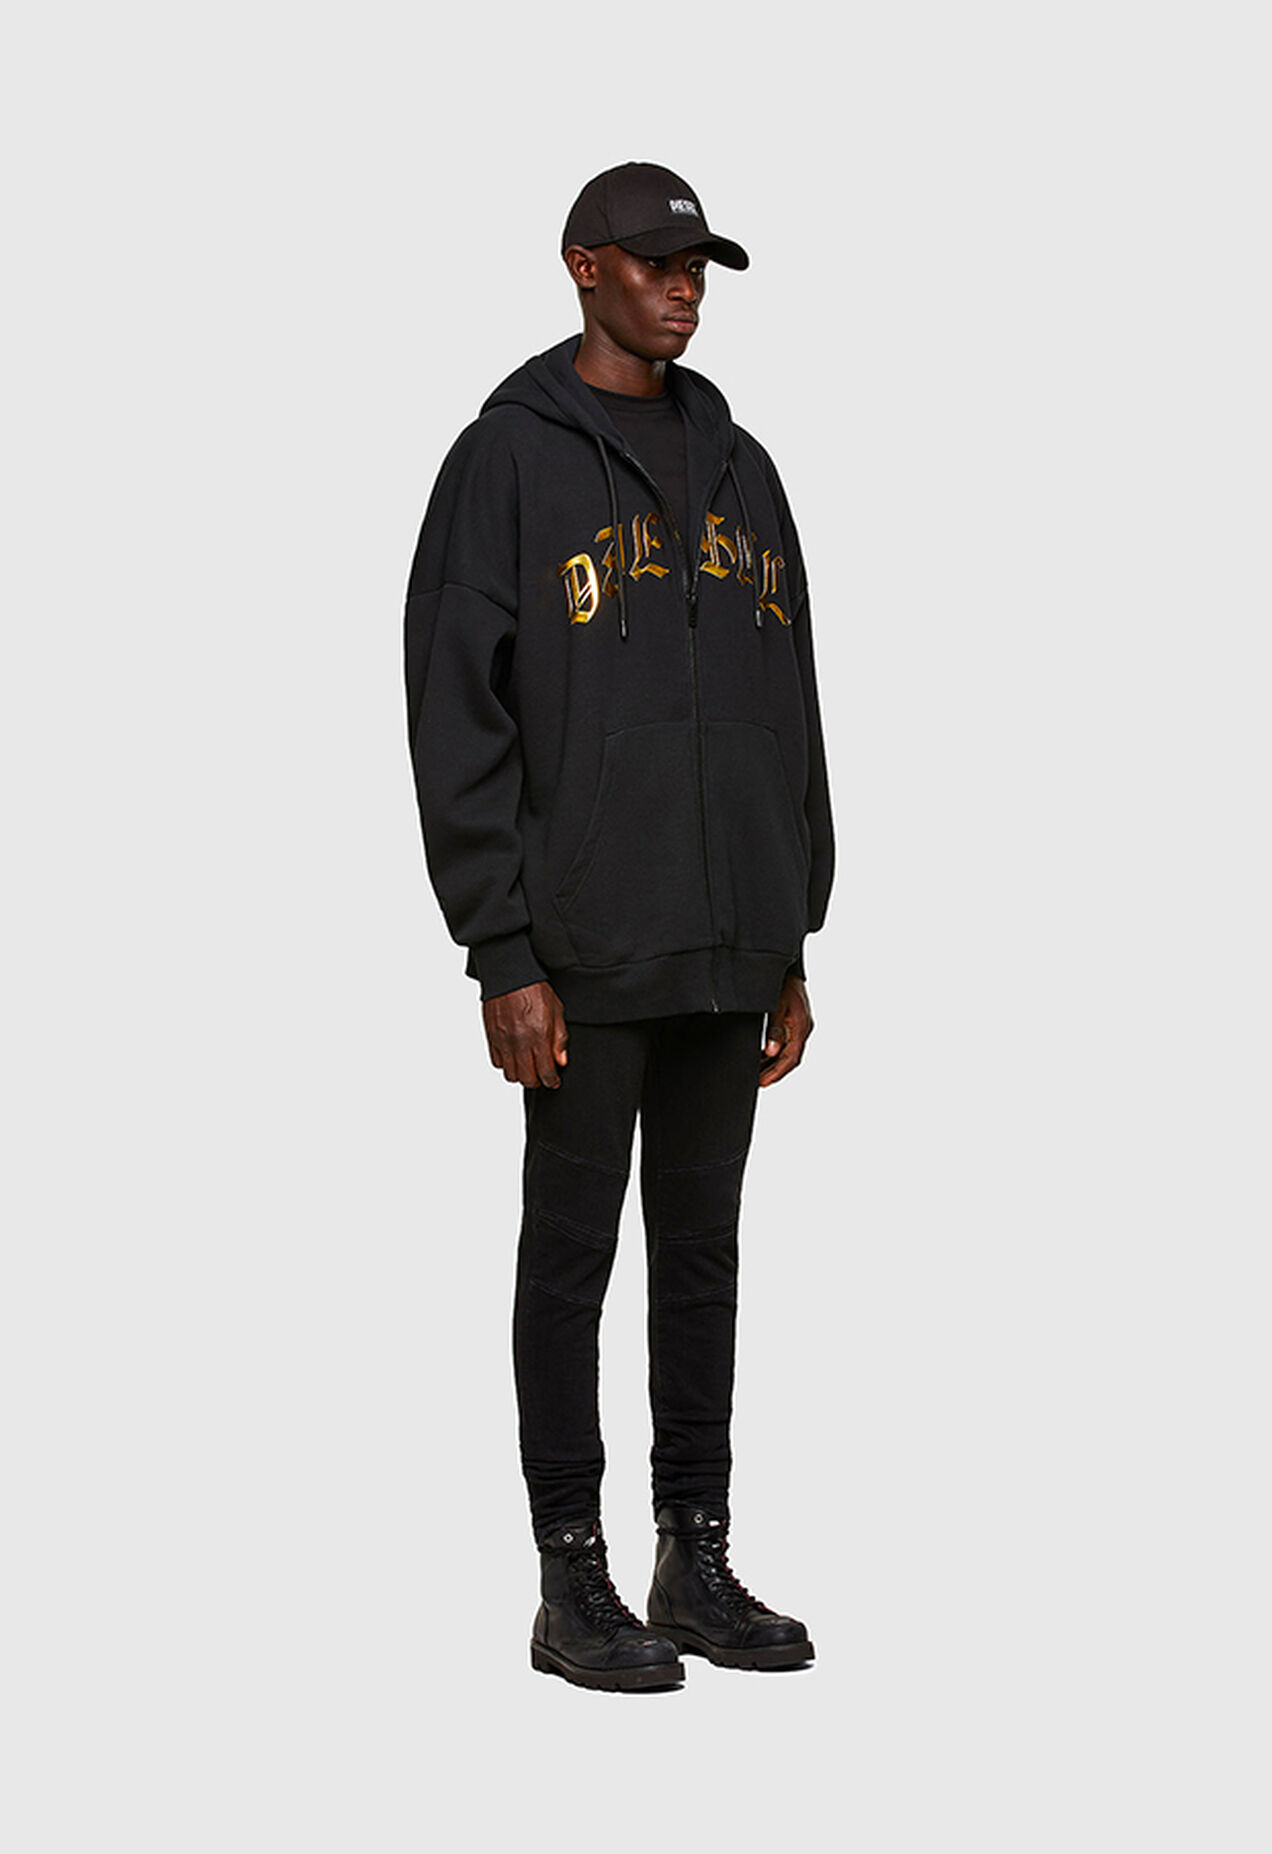 https://lu.diesel.com/dw/image/v2/BBLG_PRD/on/demandware.static/-/Library-Sites-DieselMFSharedLibrary/default/dw9ca0dc9c/CATEGORYOV/2x2_s-oxi_sweatshirt_holiday-launch_A01821_0KAZW_9XX_C.jpg?sw=1272&sh=1854